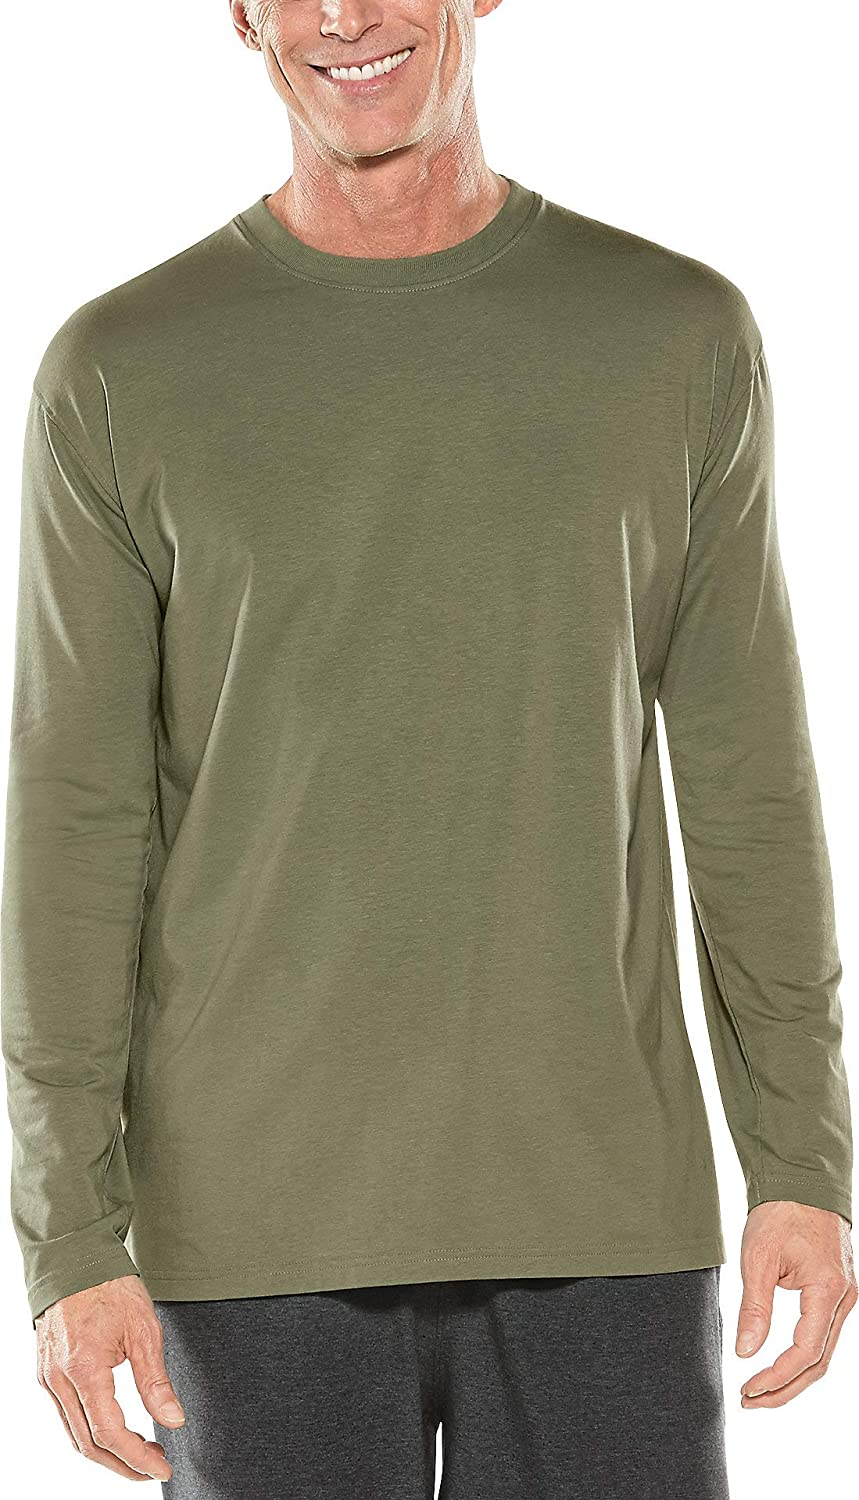 Coolibar UPF 50+ Men's Morada Everyday Long Sleeve T-Shirt - Sun Protective